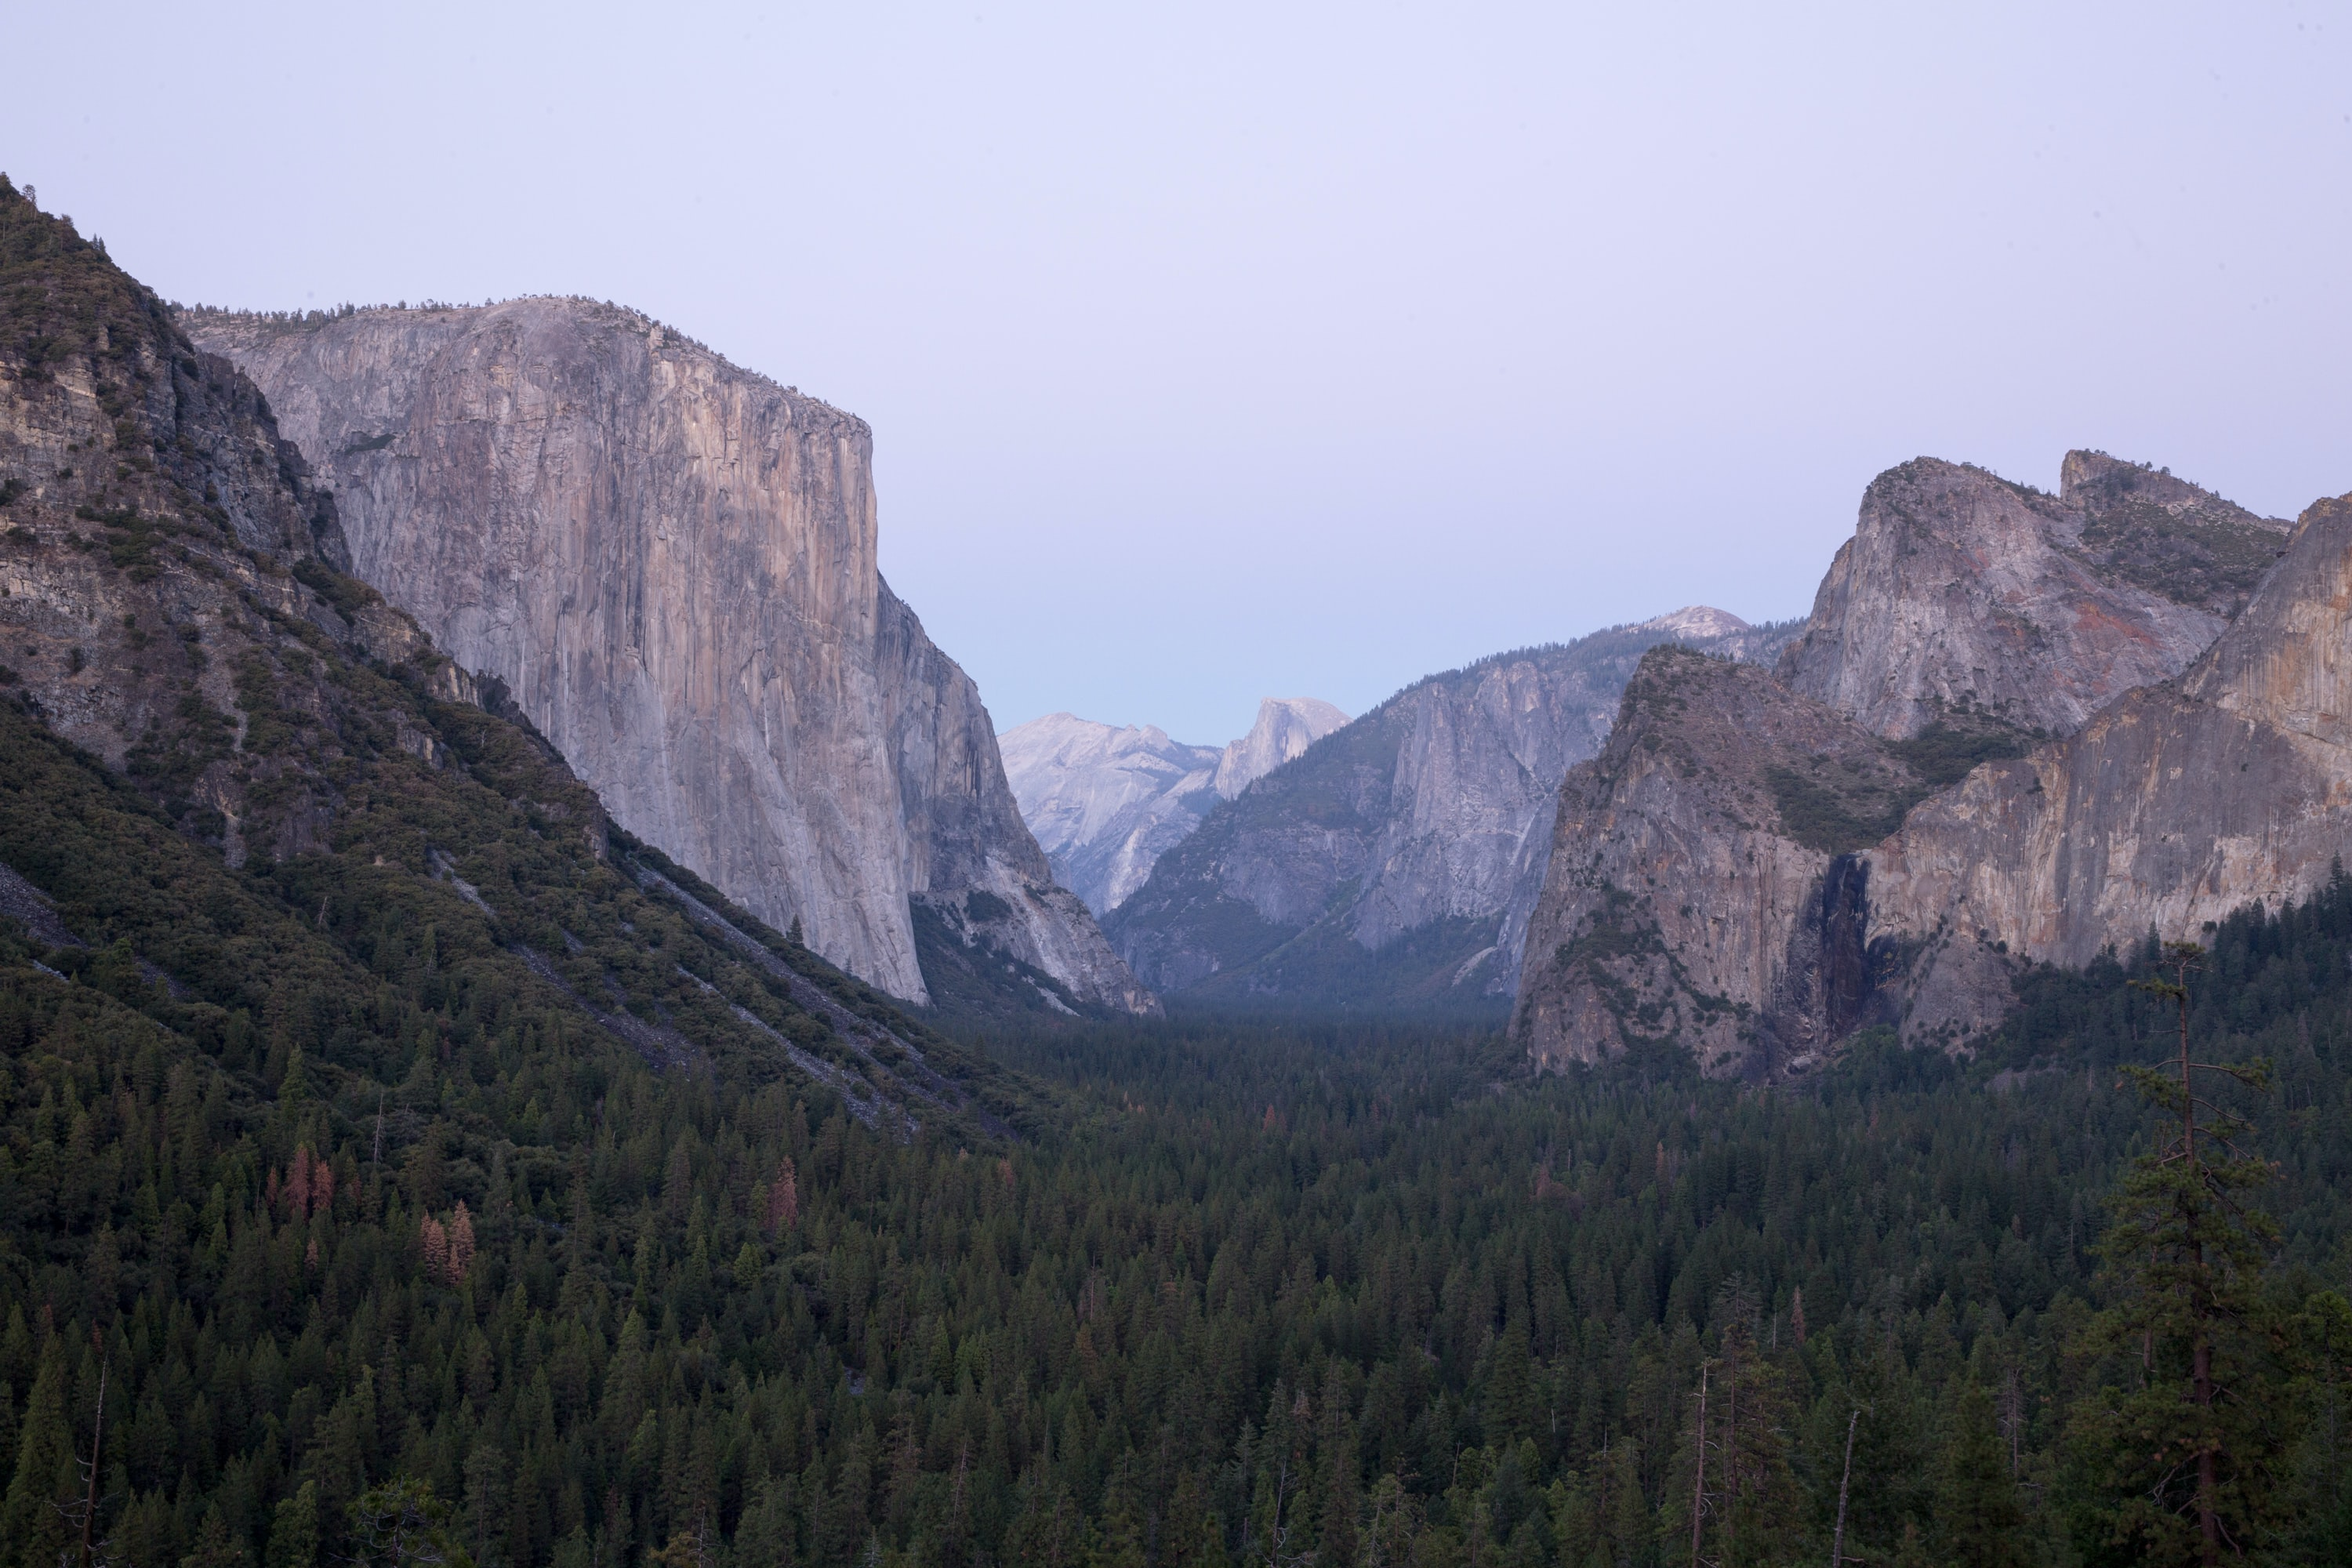 The bottom of Yosemite Valley on a breezy morning